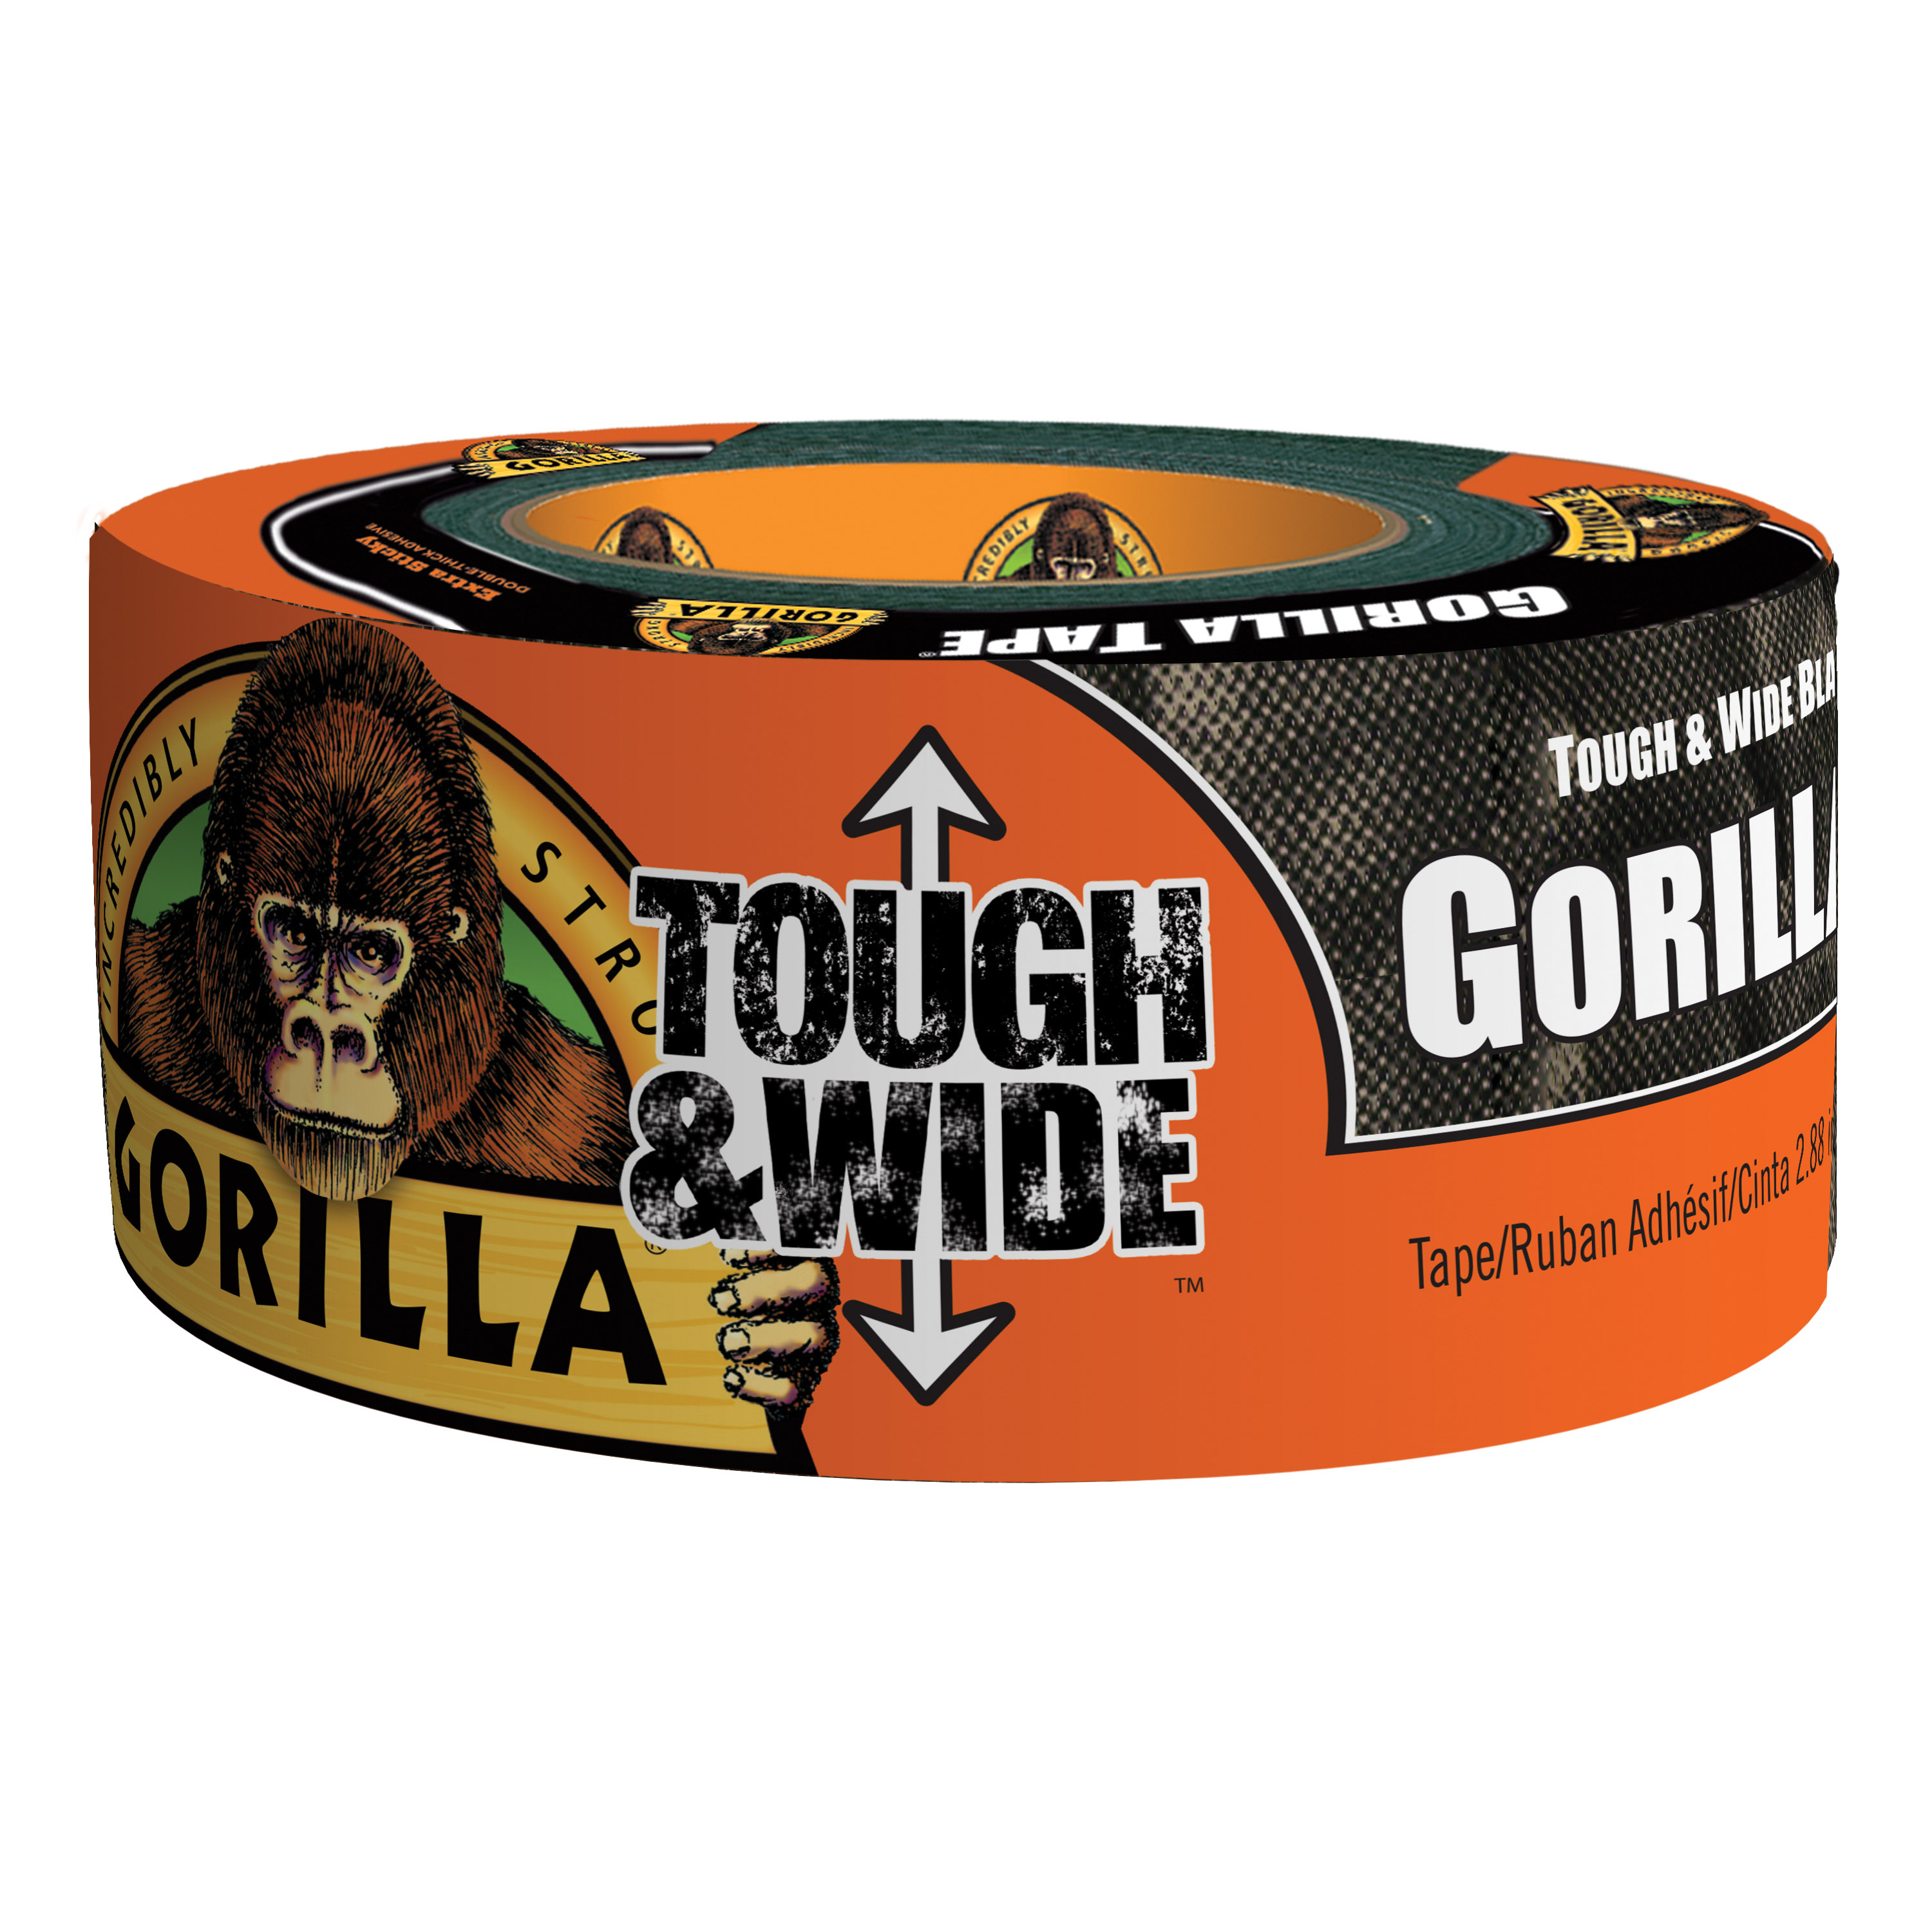 Gorilla Tough & Wide Duct Tape, 30yd Black